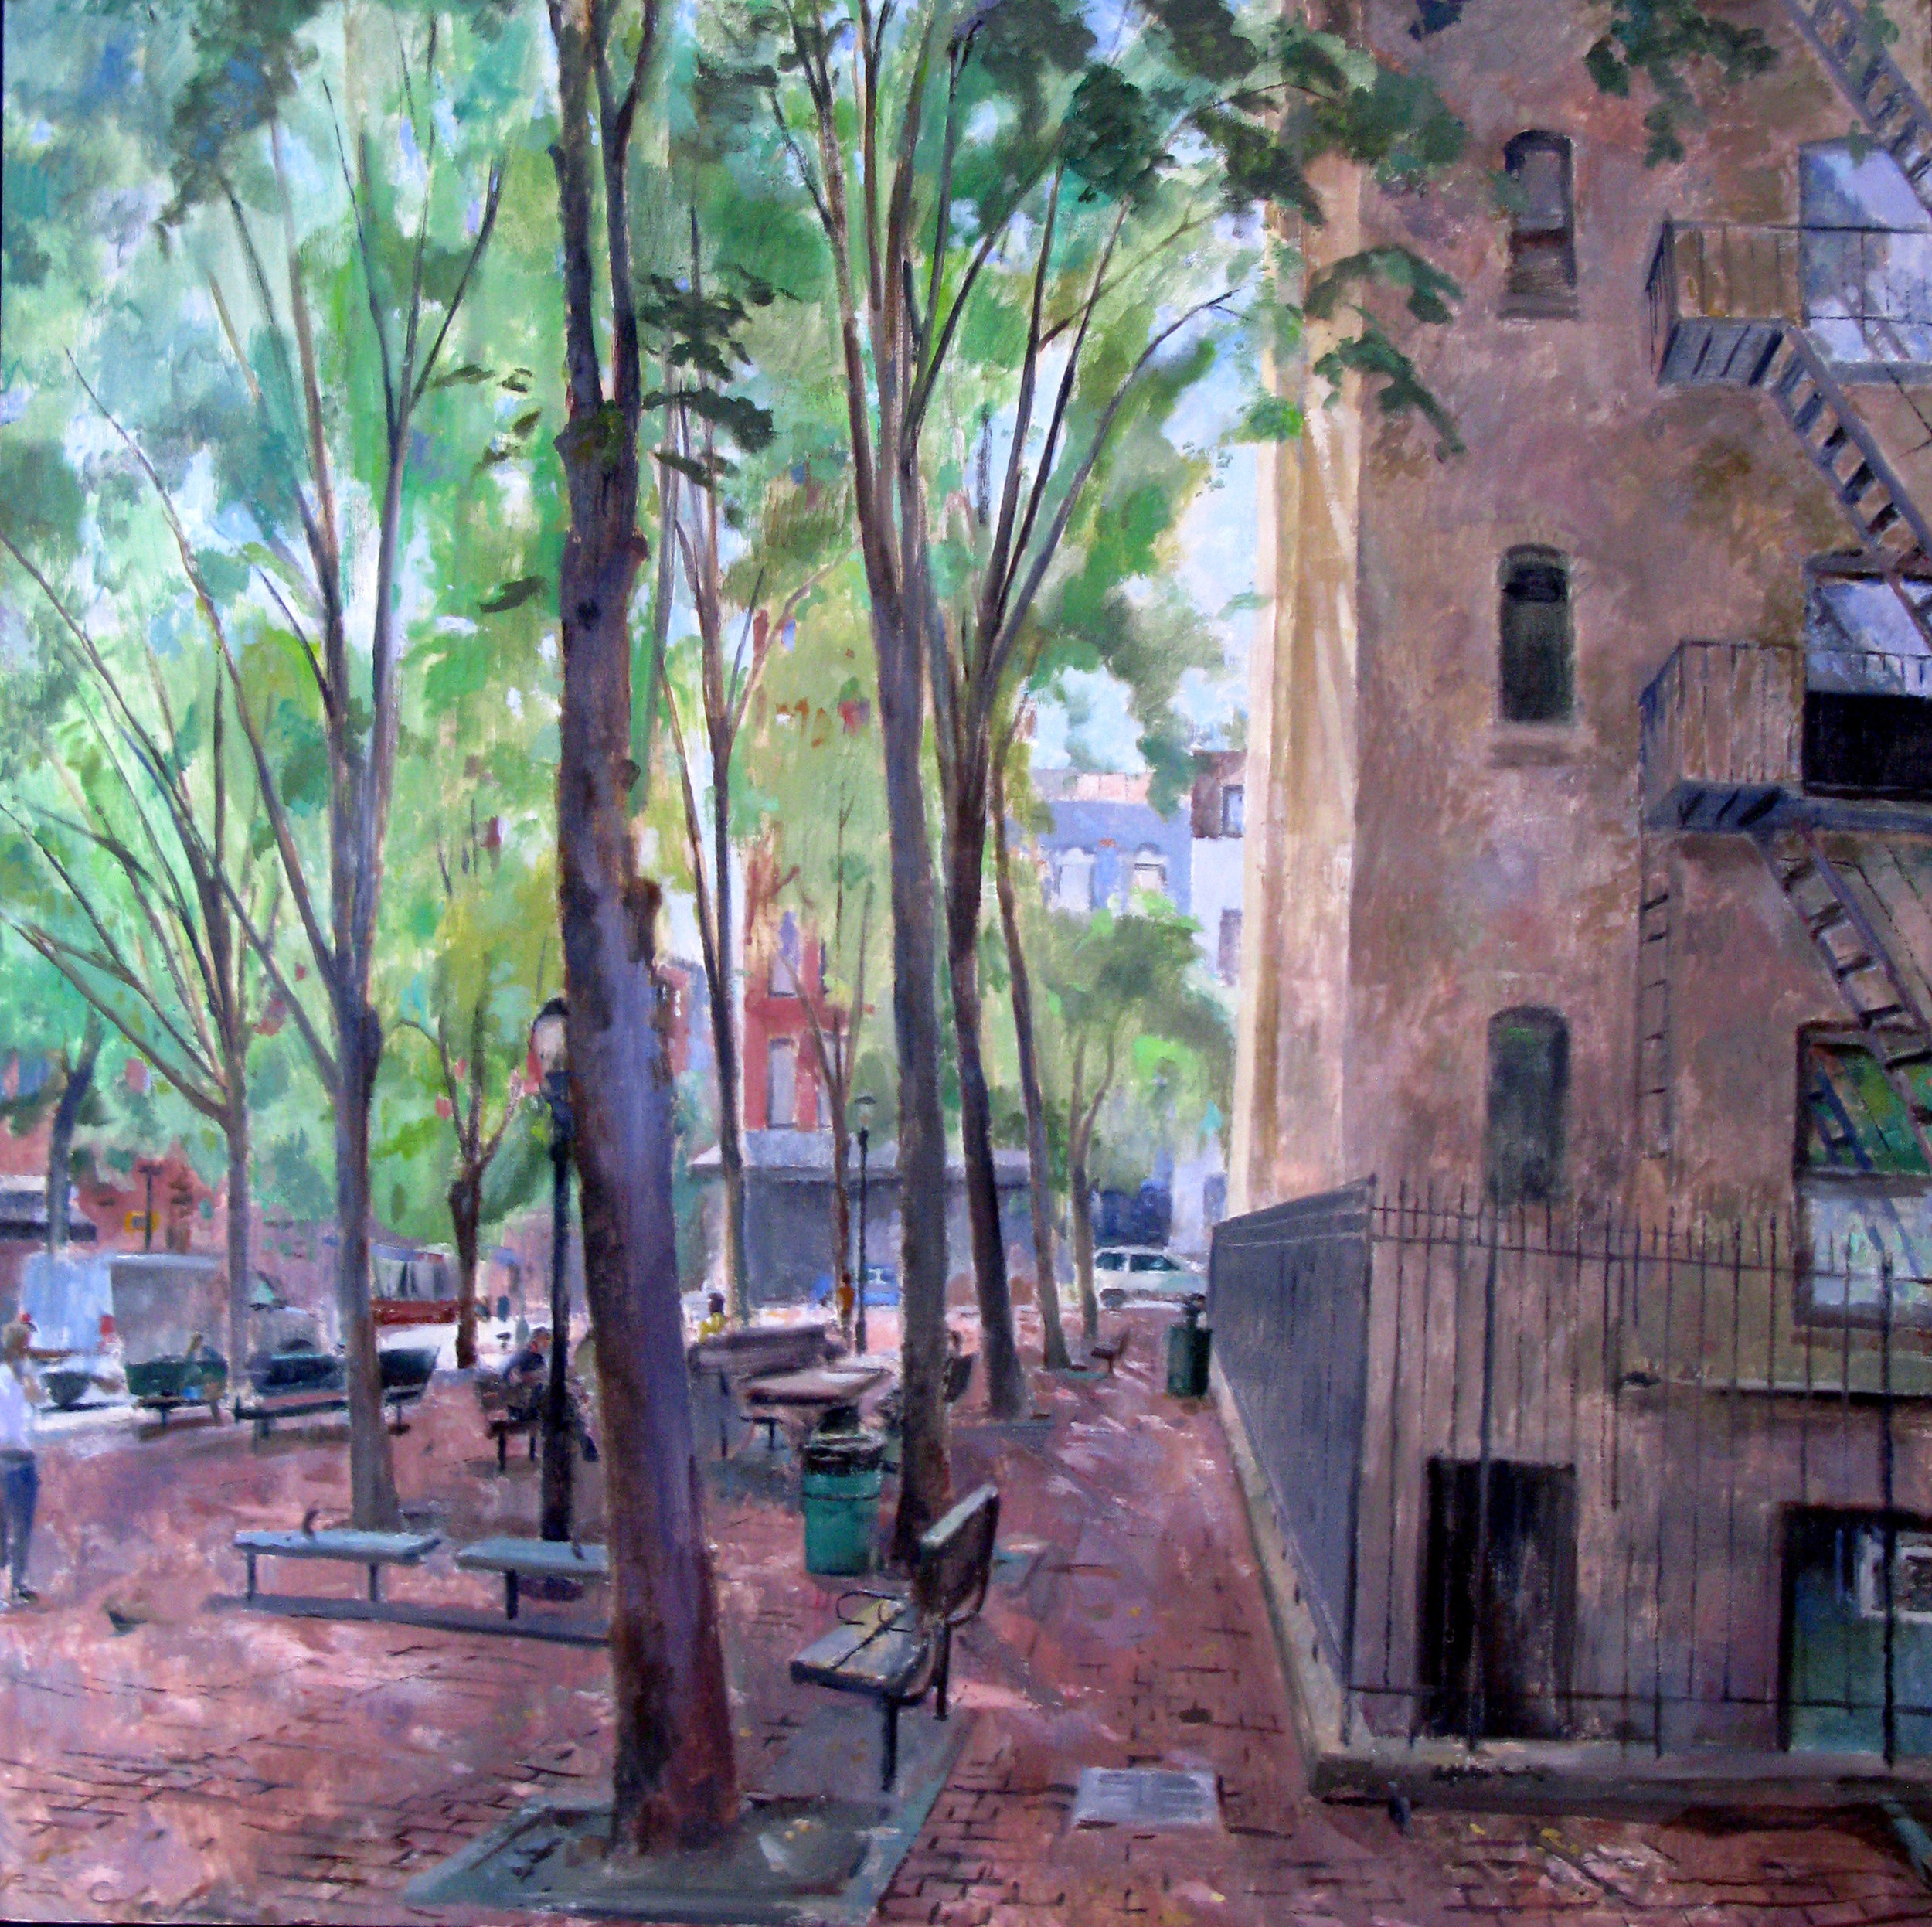 Bleecker Park, 54 x 54 inches, oil on linen